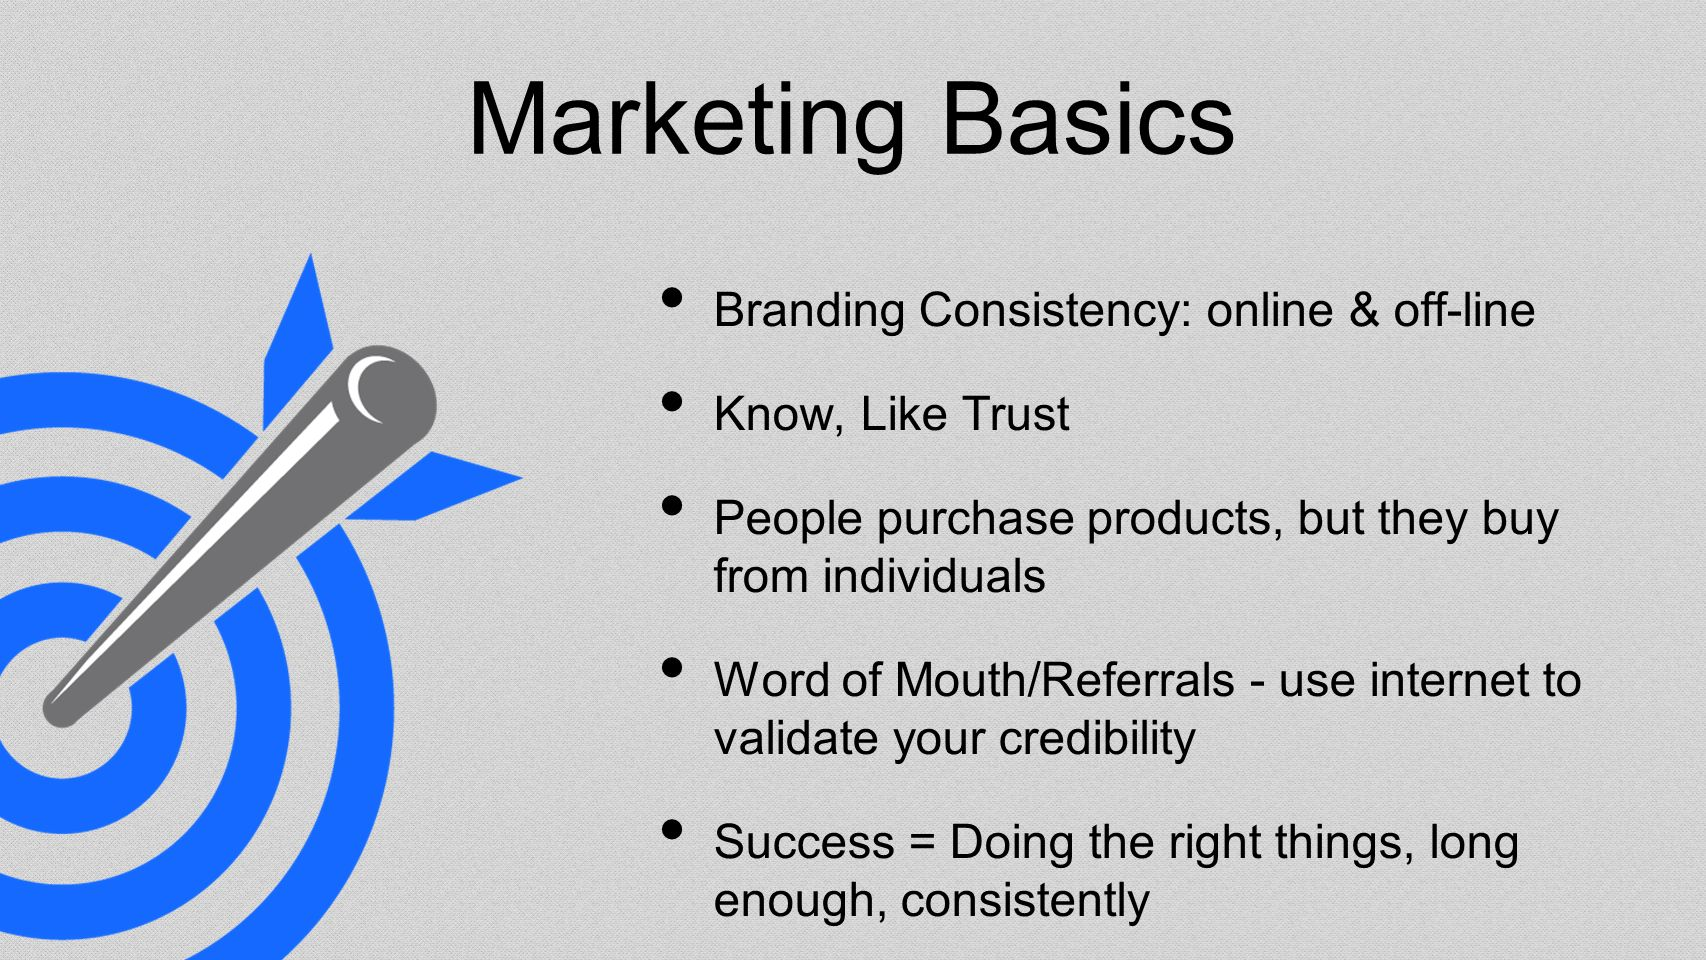 Marketing Basics Branding Consistency: online & off-line Know, Like Trust People purchase products, but they buy from individuals Word of Mouth/Referrals - use internet to validate your credibility Success = Doing the right things, long enough, consistently